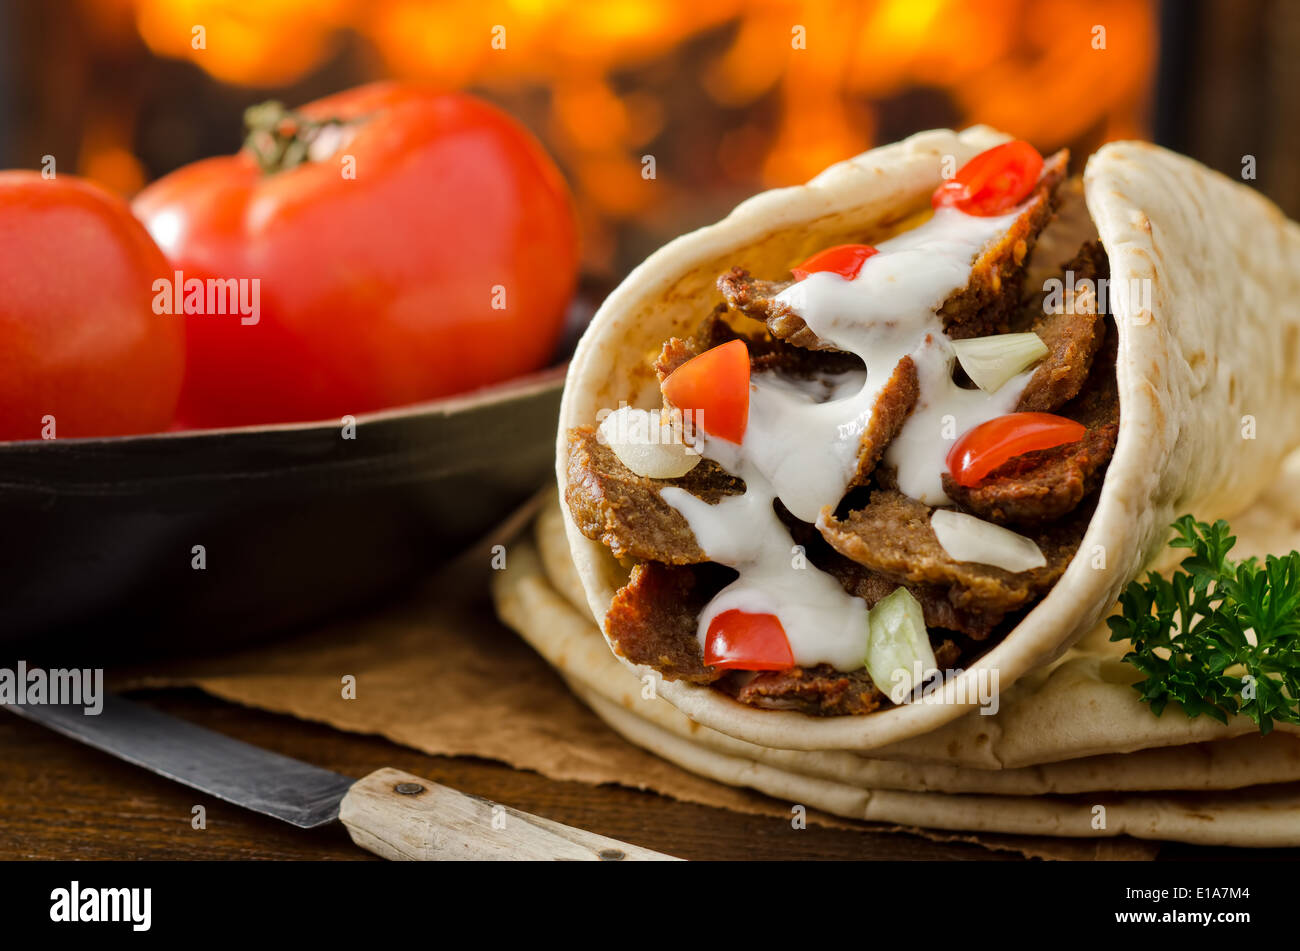 A gyro donair with onion and tomato against a hardwood fire background. - Stock Image